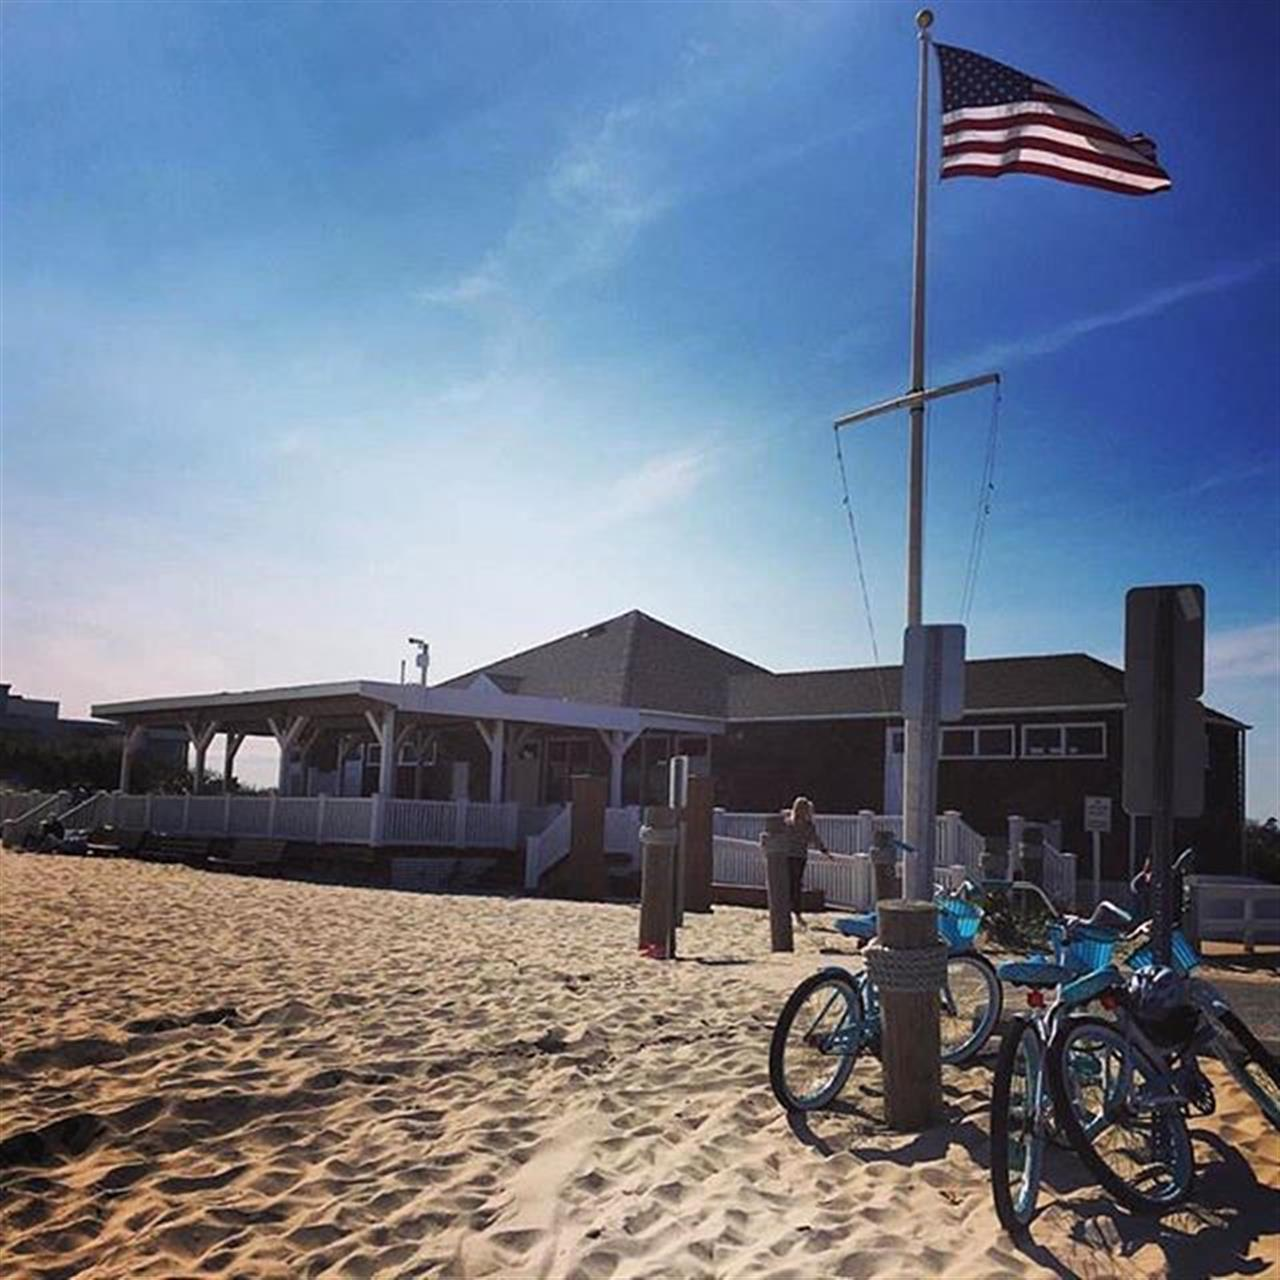 Riding out bikes to the beach. #hamptons #vacation #seeingTheUS #travel #localcustoms #leadingrelocal #bairdwarner #chicago #realestate